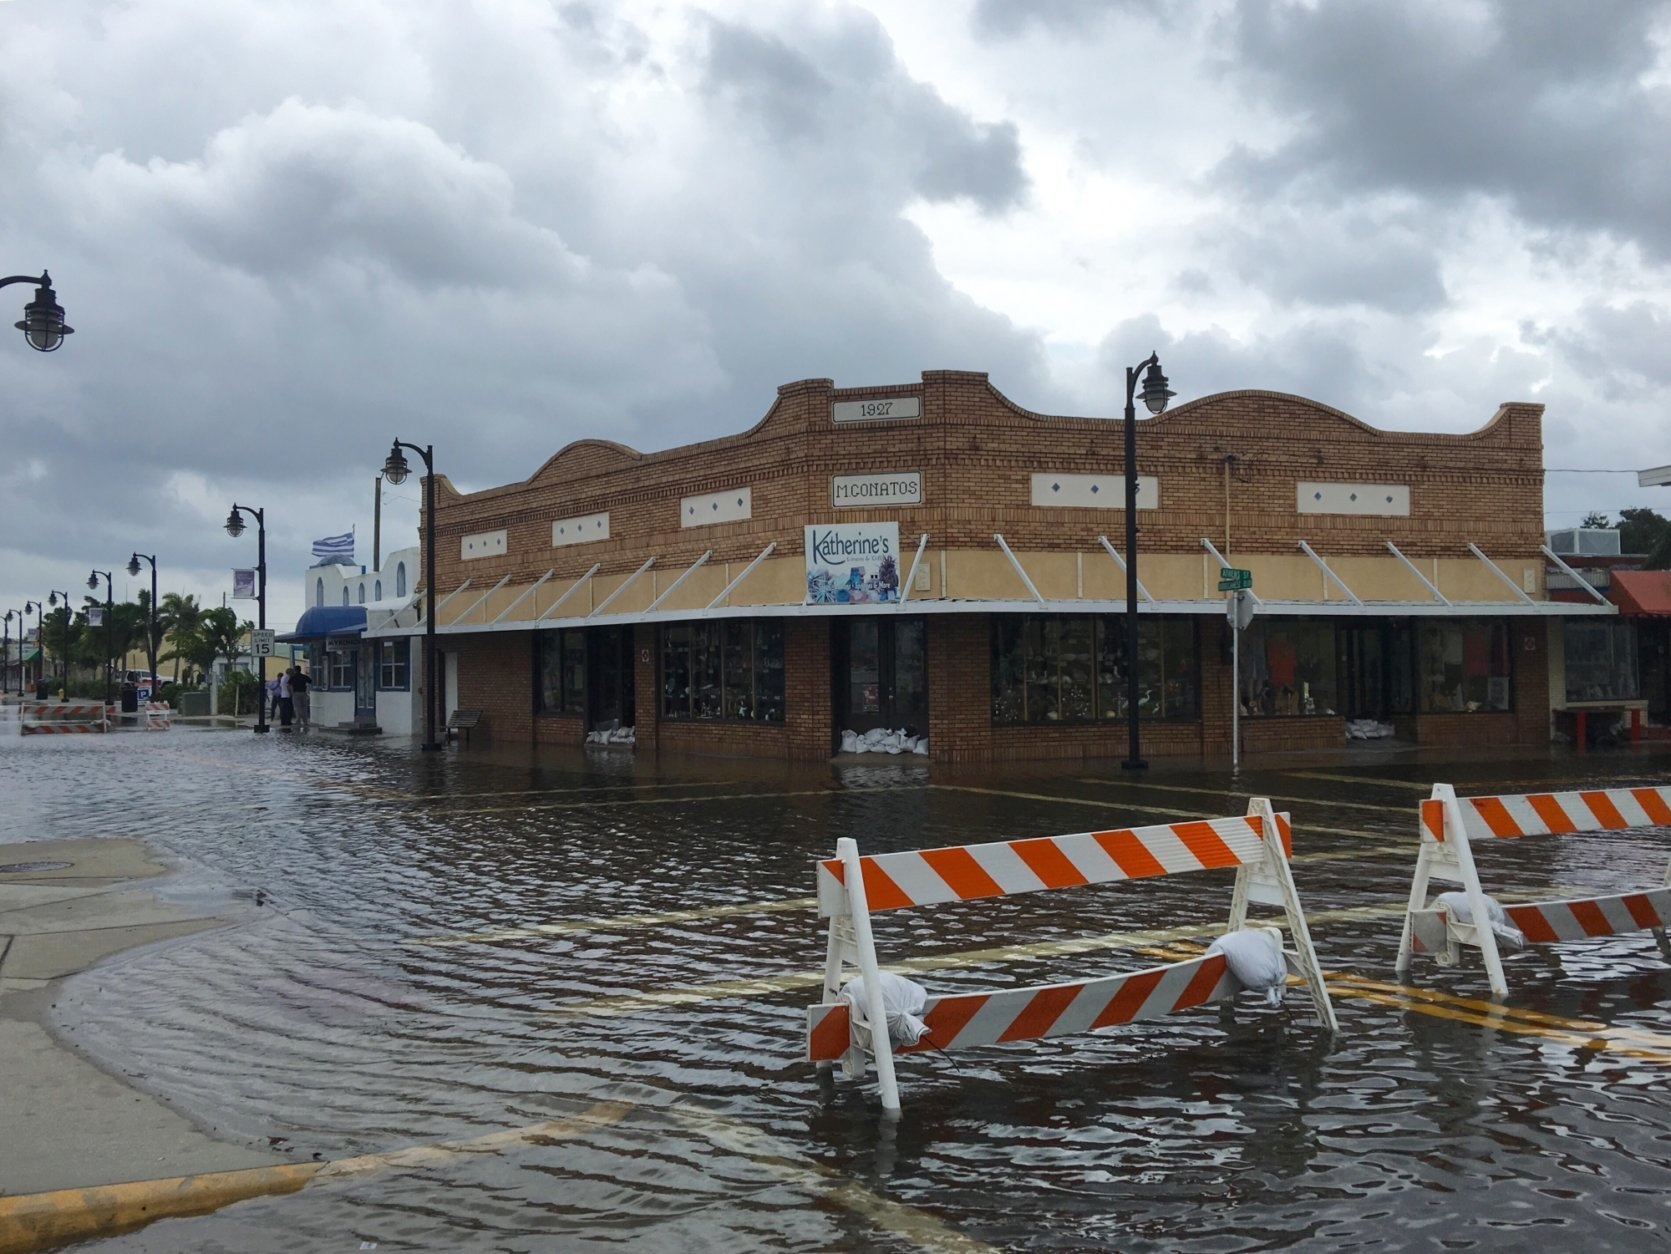 High tide from offshore Hurricane Michael creeps up into the Sponge Docks in Tarpon Springs, Fla., Wednesday, Oct. 10, 2018 after the Anclote River backs up. (Jim Damaske/The Tampa Bay Times via AP)